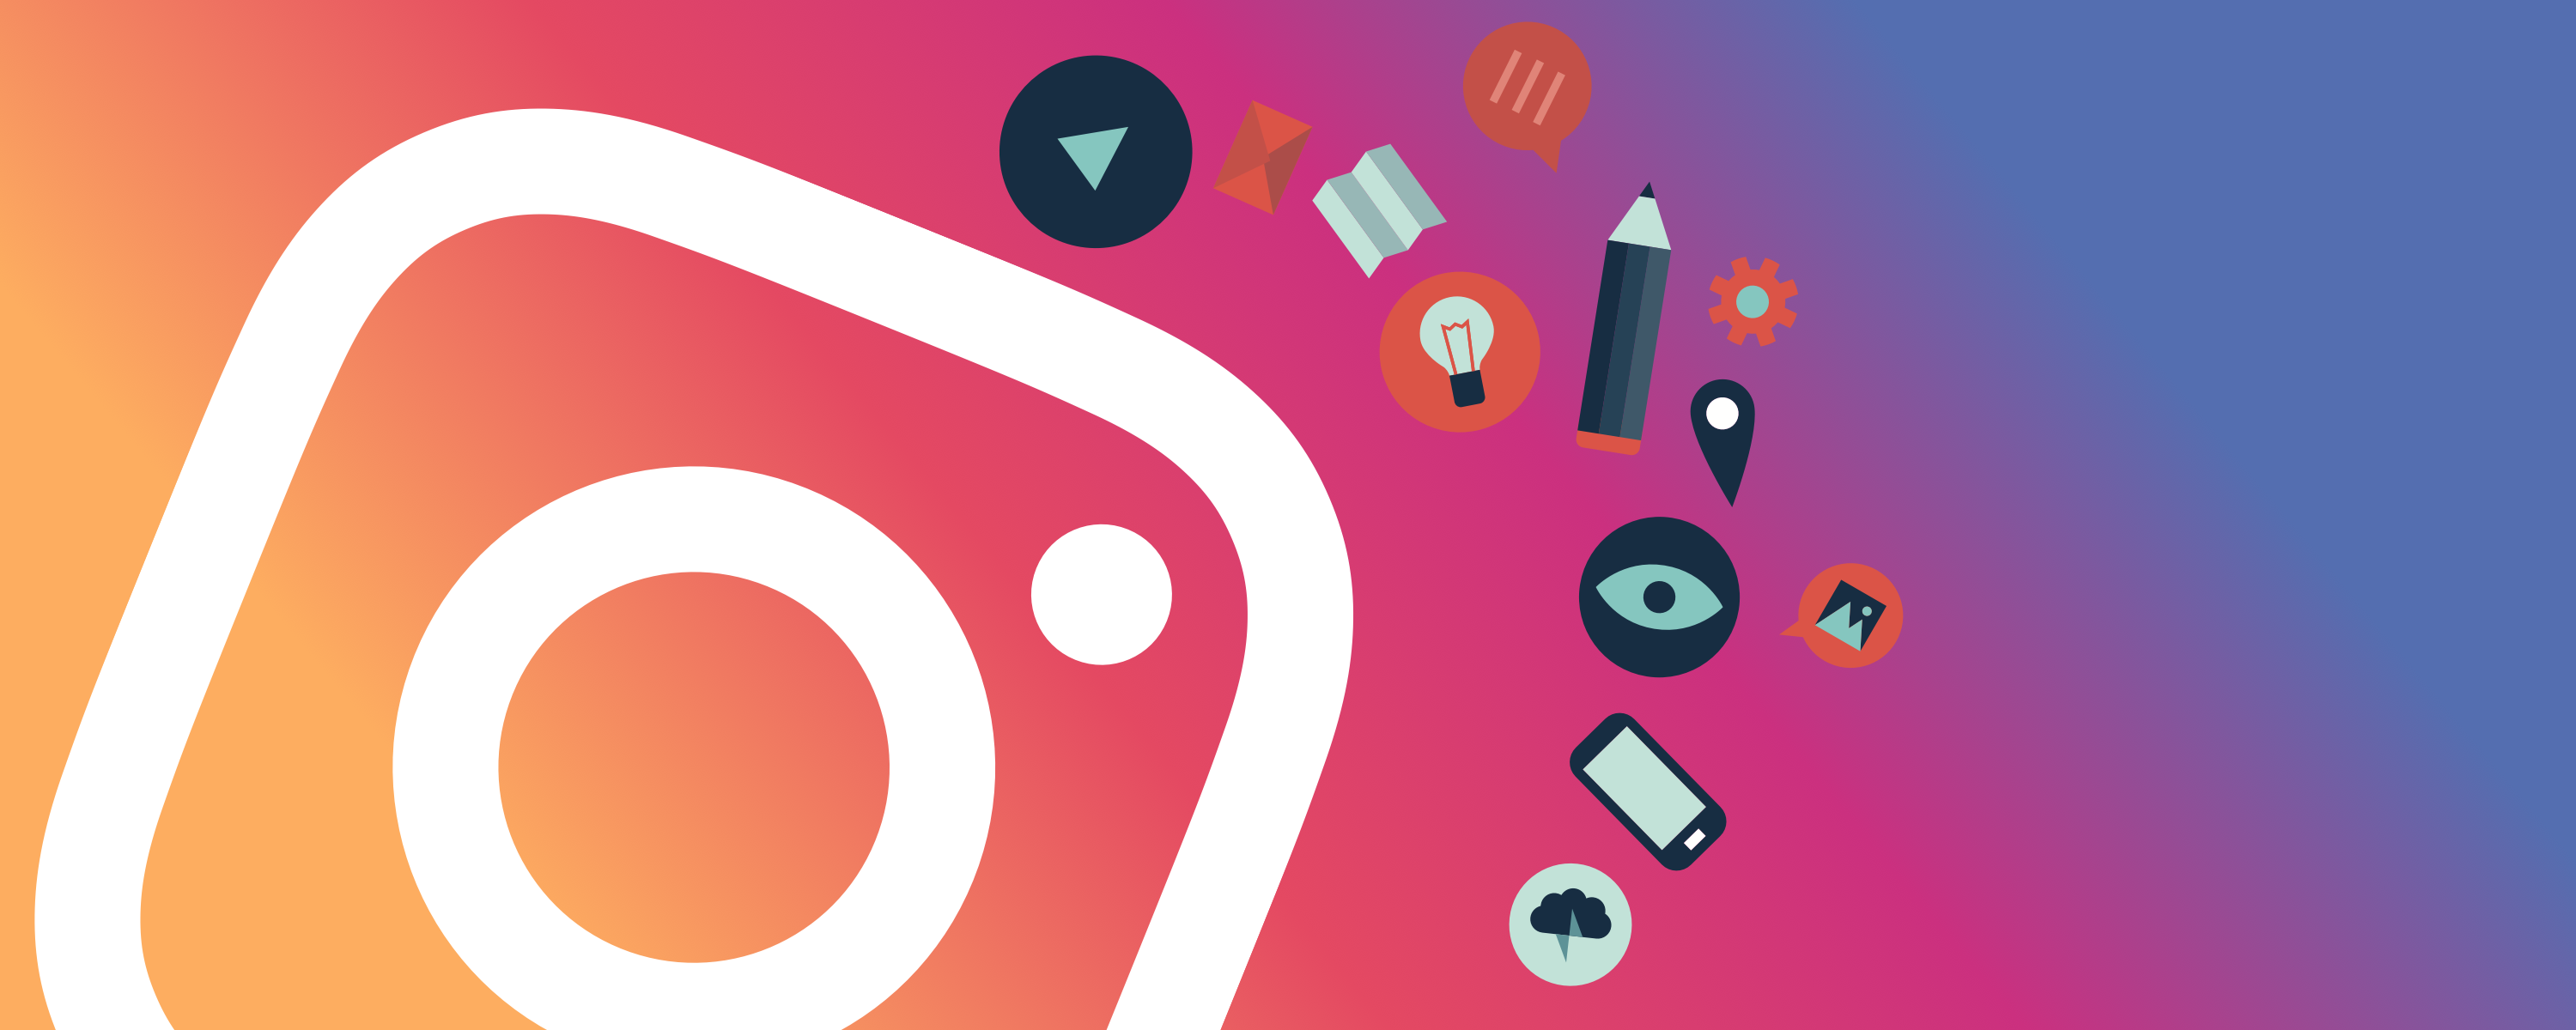 Come verificare un account Instagram in pochi passaggi 2